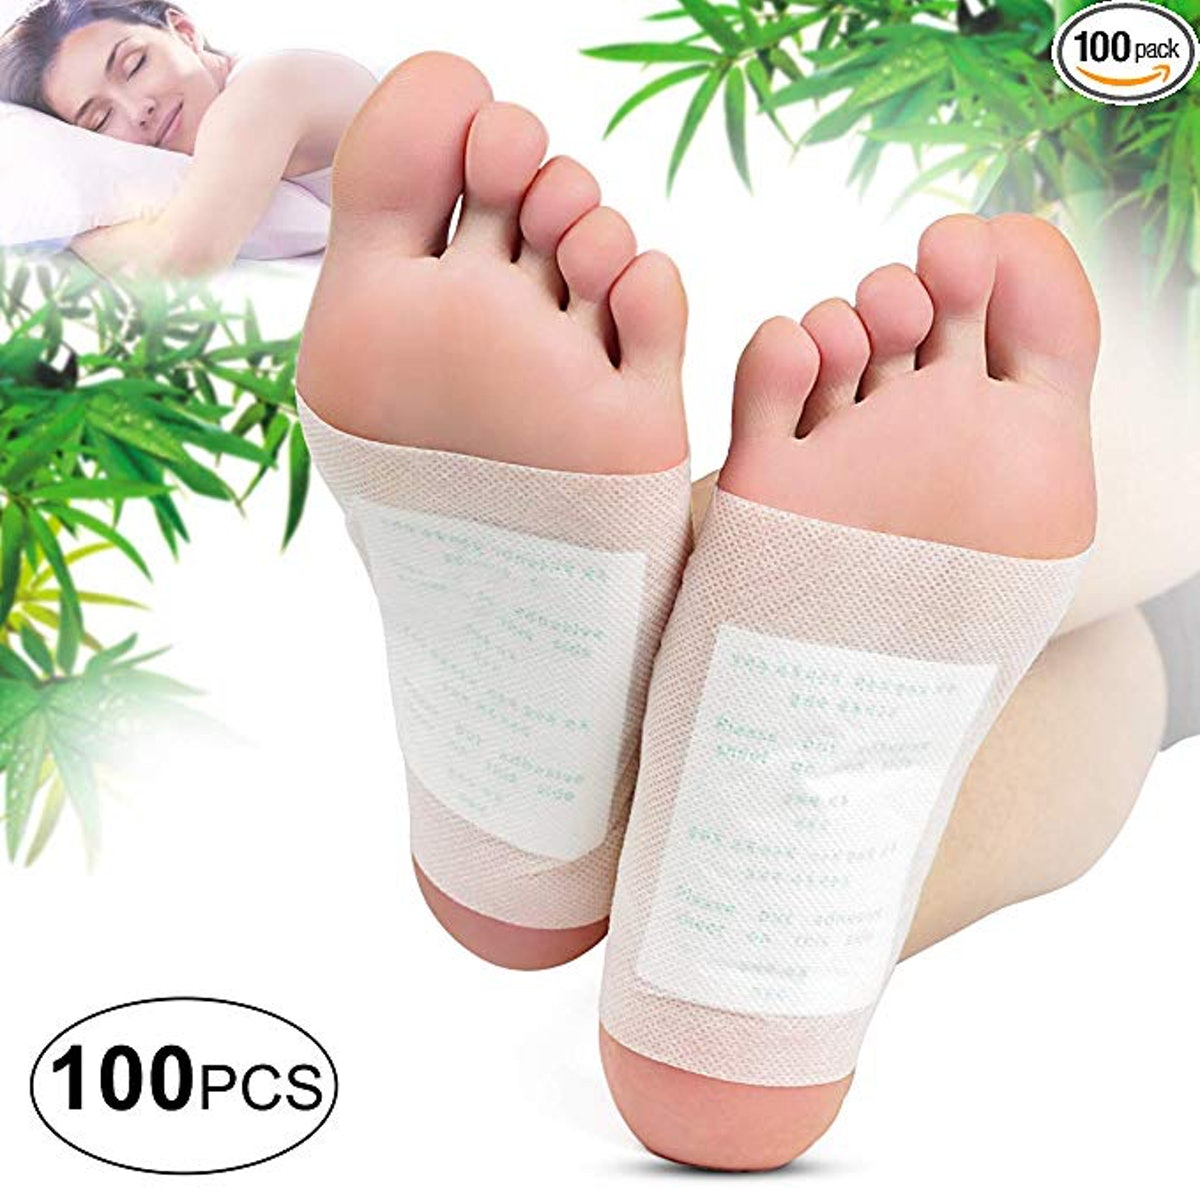 BON'TIME Foot Pads (100-Pack)